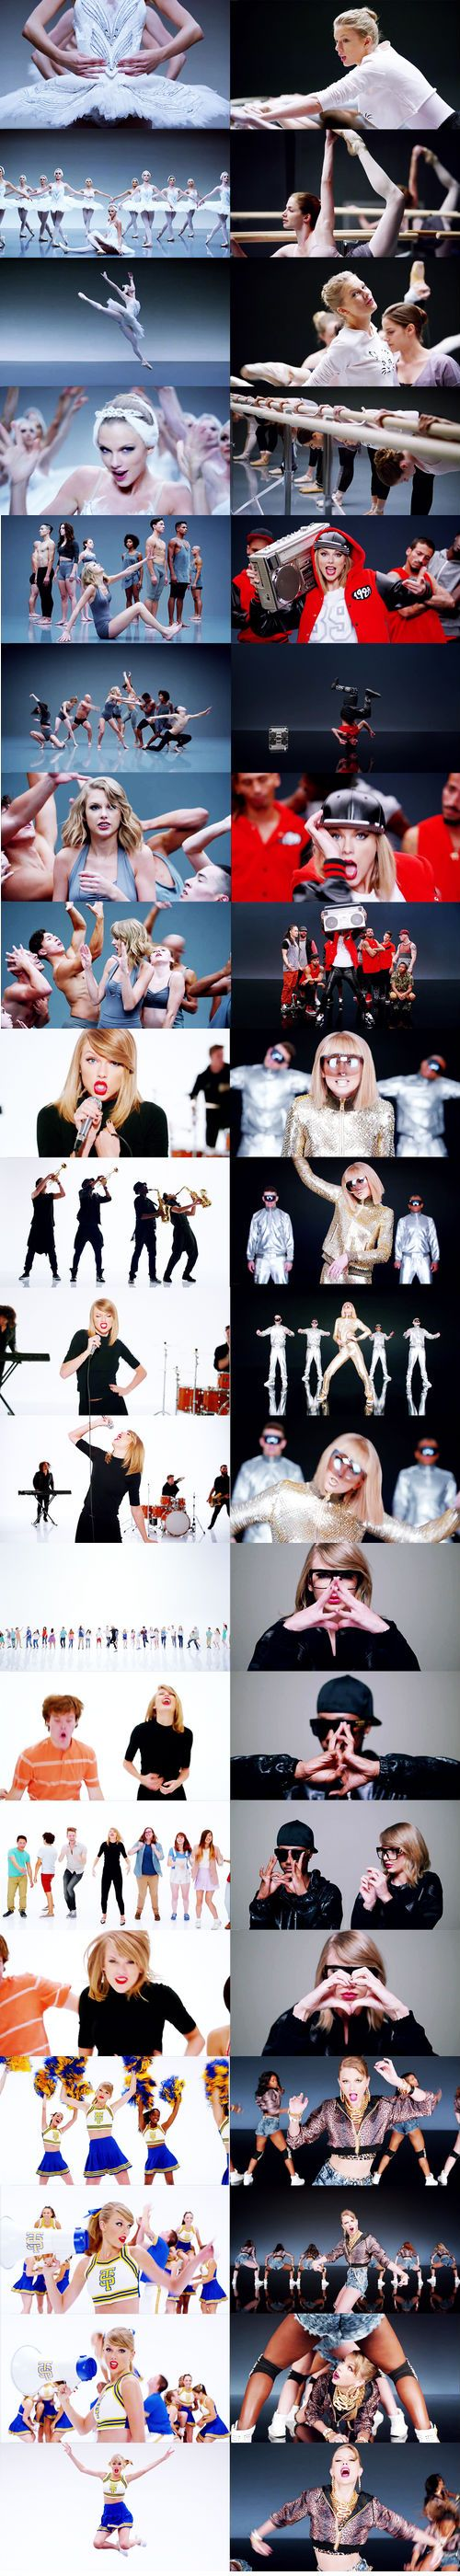 Taylor Swift - Shake It Off (1989) ♥ music video